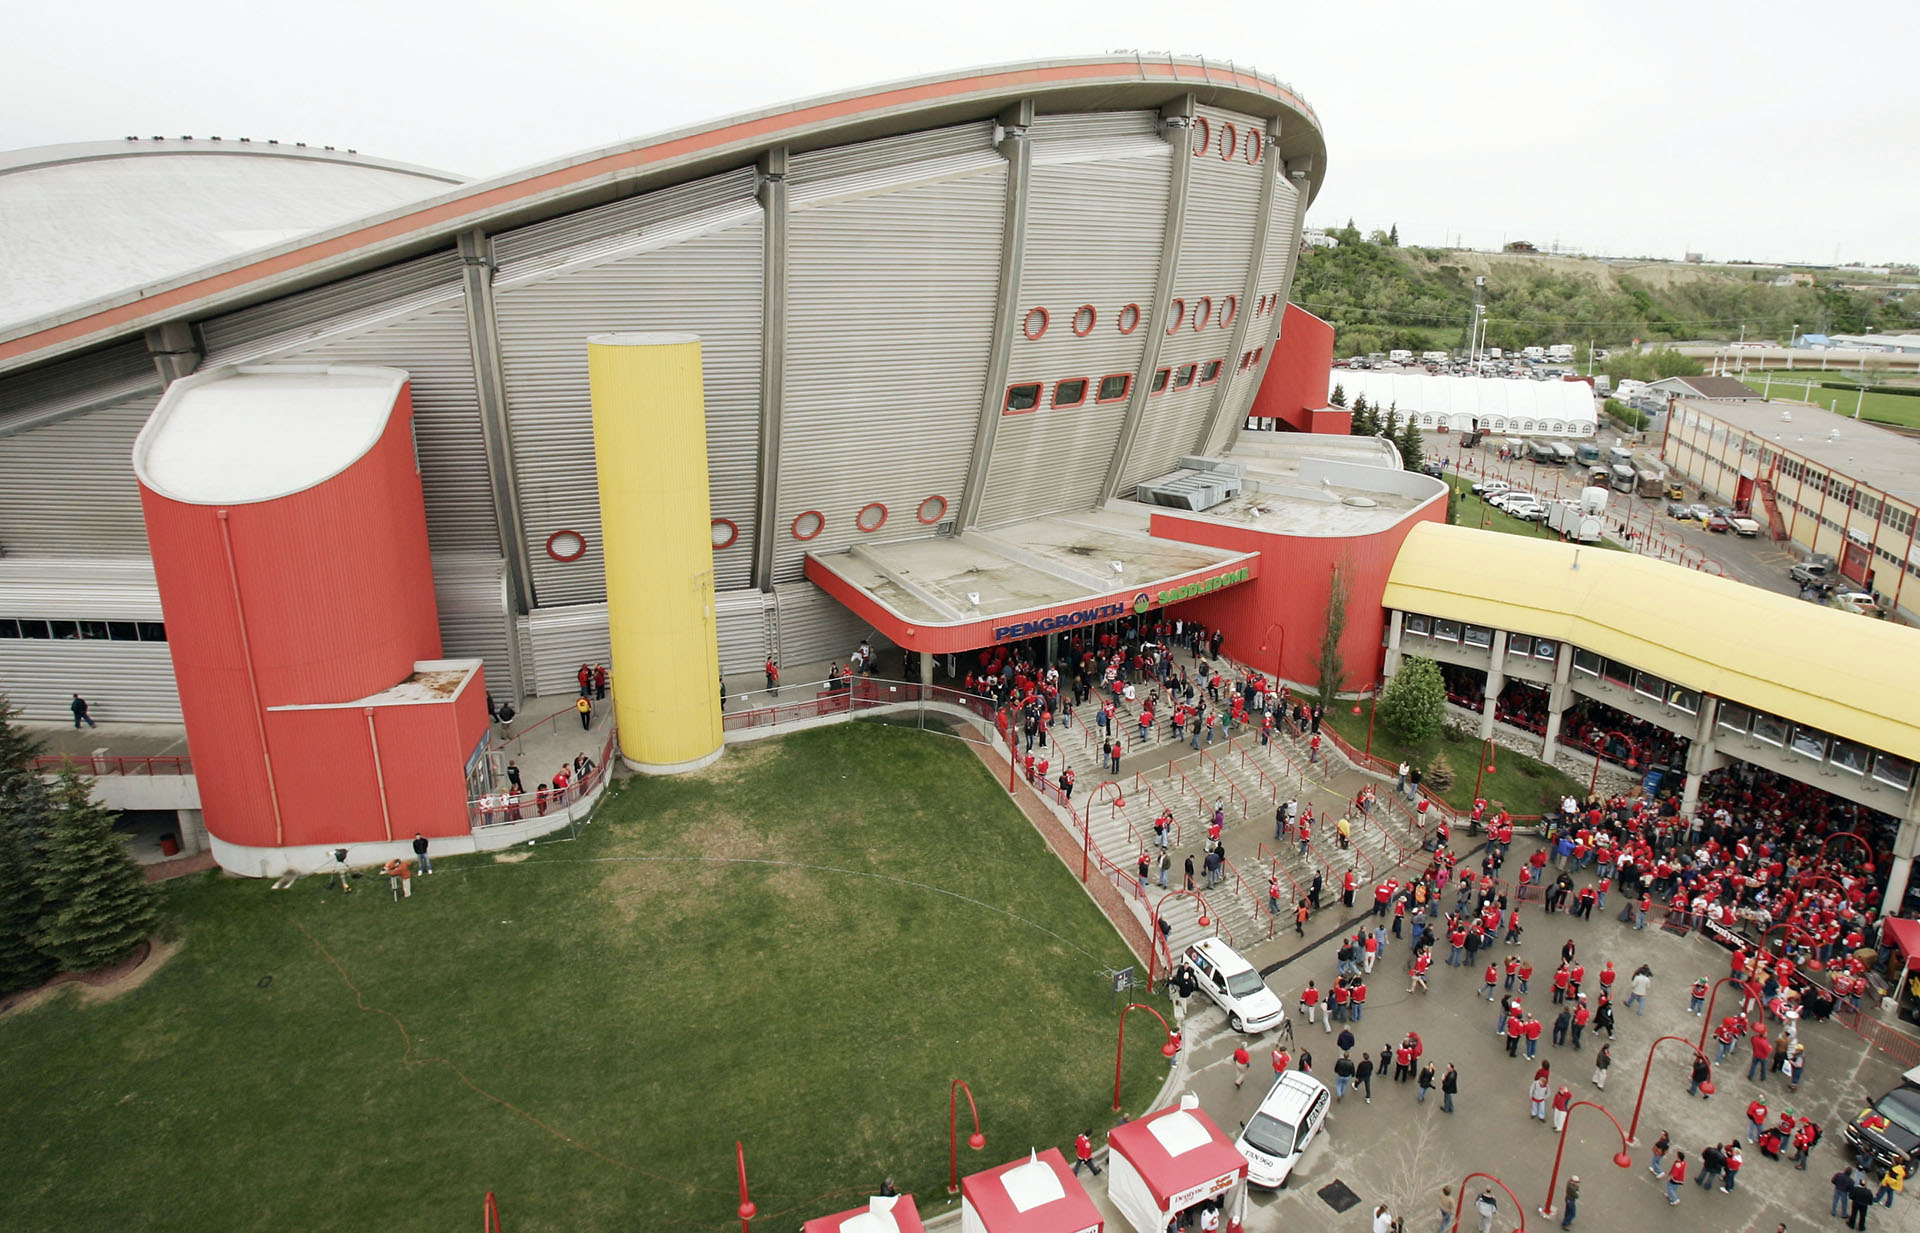 Calgary Flames No Point To Continue Pursuit Of New Arena In Calgary Sporting News Canada